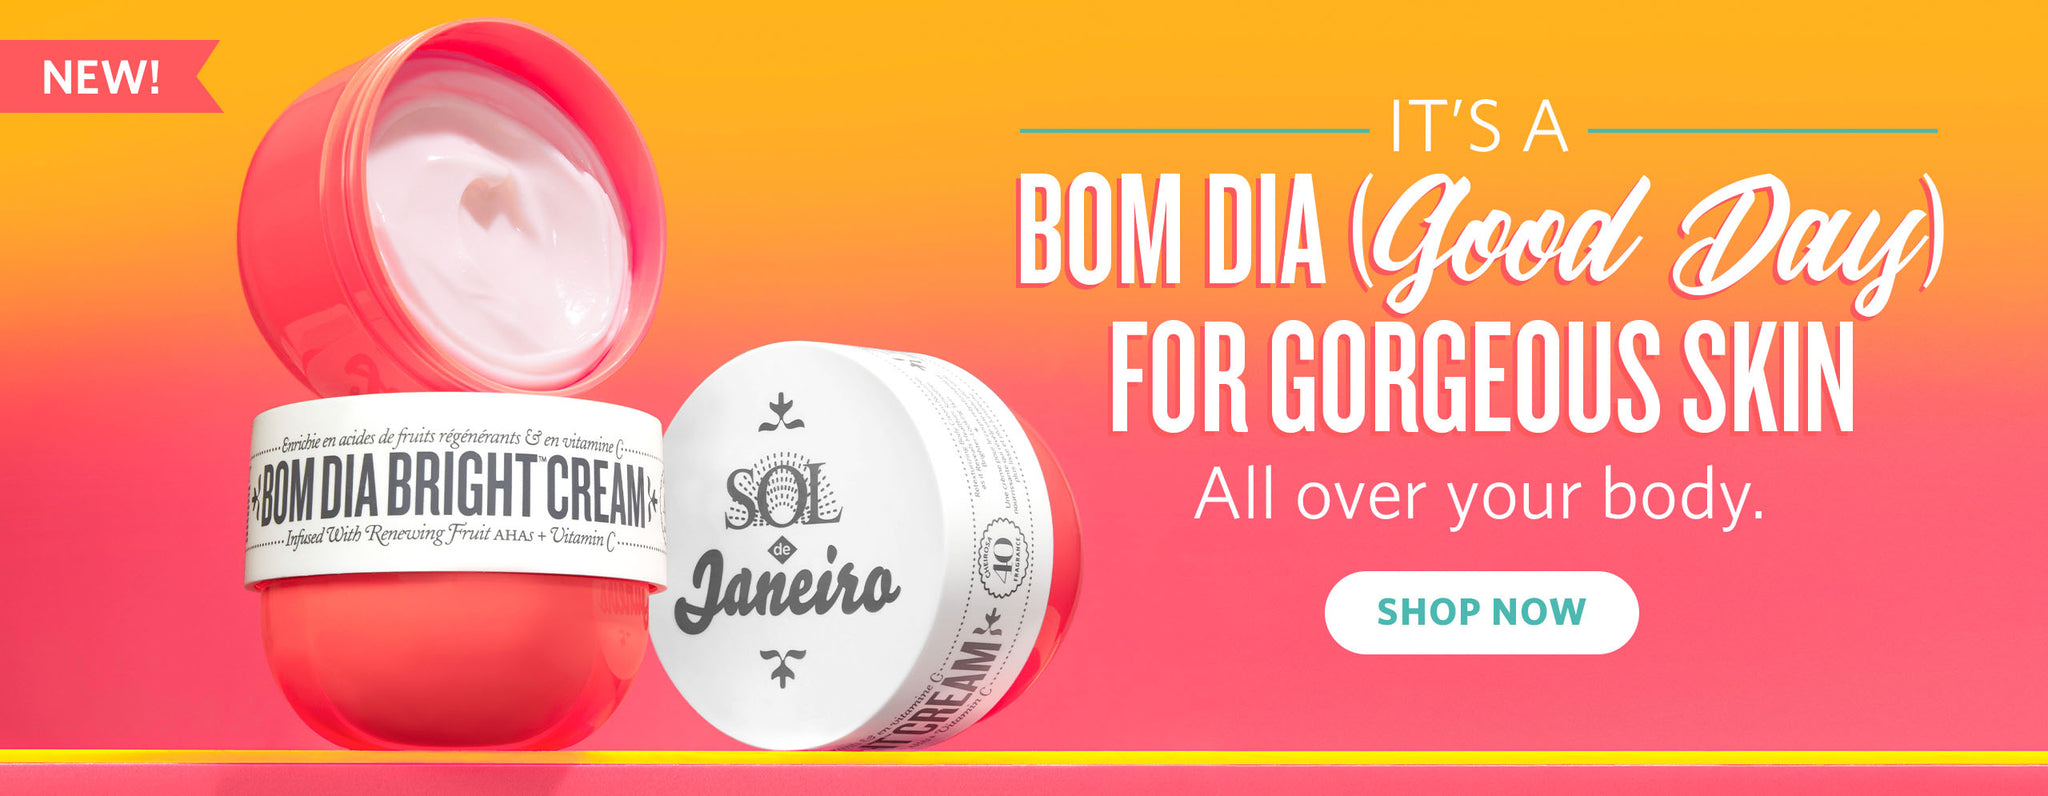 New! It's a Bom Dia (Good Day) For Gorgeous Skin All Over Your Body - Shop Now